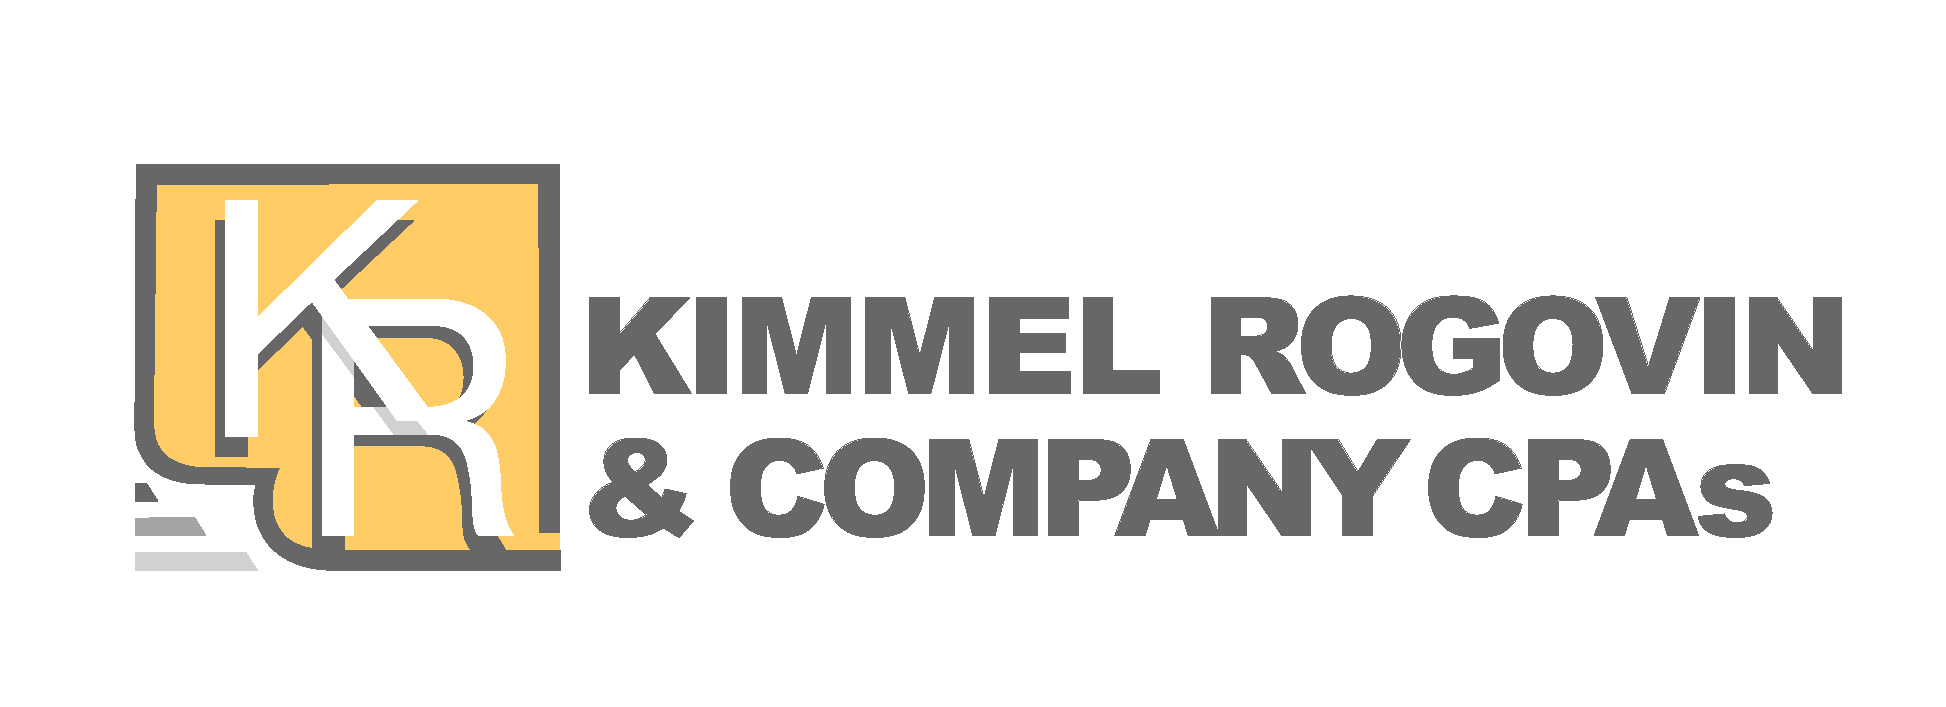 Full-Service Accounting - Kimmel, Rogovin & Co LLP is a full-service accounting; tax practice; and outsourced CFO services firm located in Encino, CA.Kimmel, Rogovin & Co LLP has provided expert tax preparation; business consulting; tax planning; and CFO services to individuals, Partnerships, Corporations, Estates, and Trusts in a diverse range of industries such as legal, medical, financial services, real estate, entertainment, and Film & TV Production.Michael Kimmel CPA has been certified by Intuit, Inc. as a Quick Books Professional Advisor. Michael helps clients implement, design, and customize their accounting system utilizing Quick Books. With his guidance, many clients have improved their productivity and bottom line.